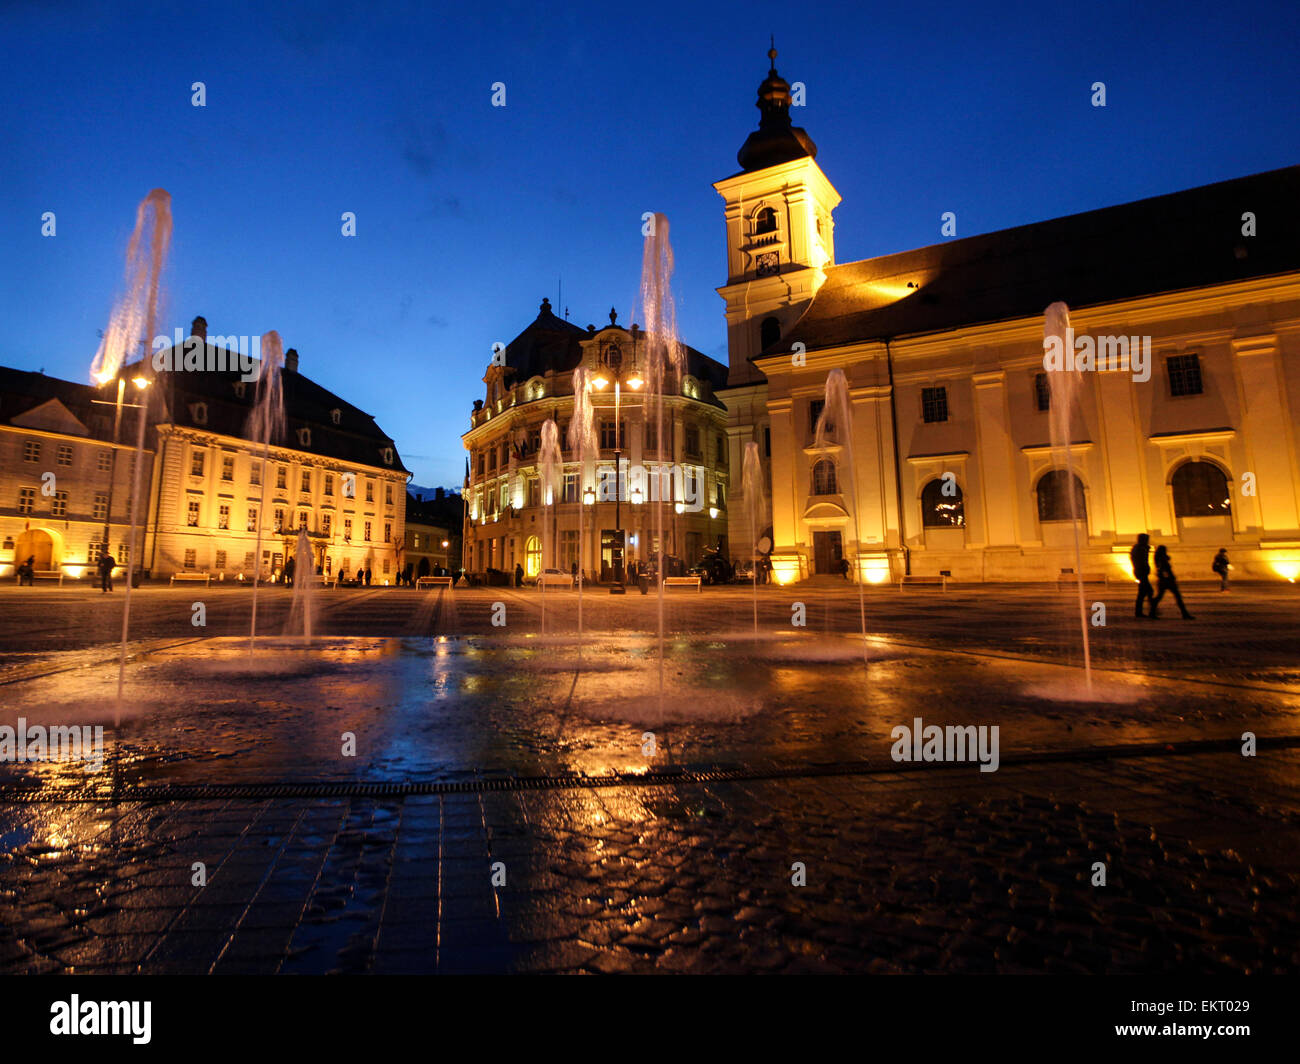 Sibiu main square at night - Stock Image